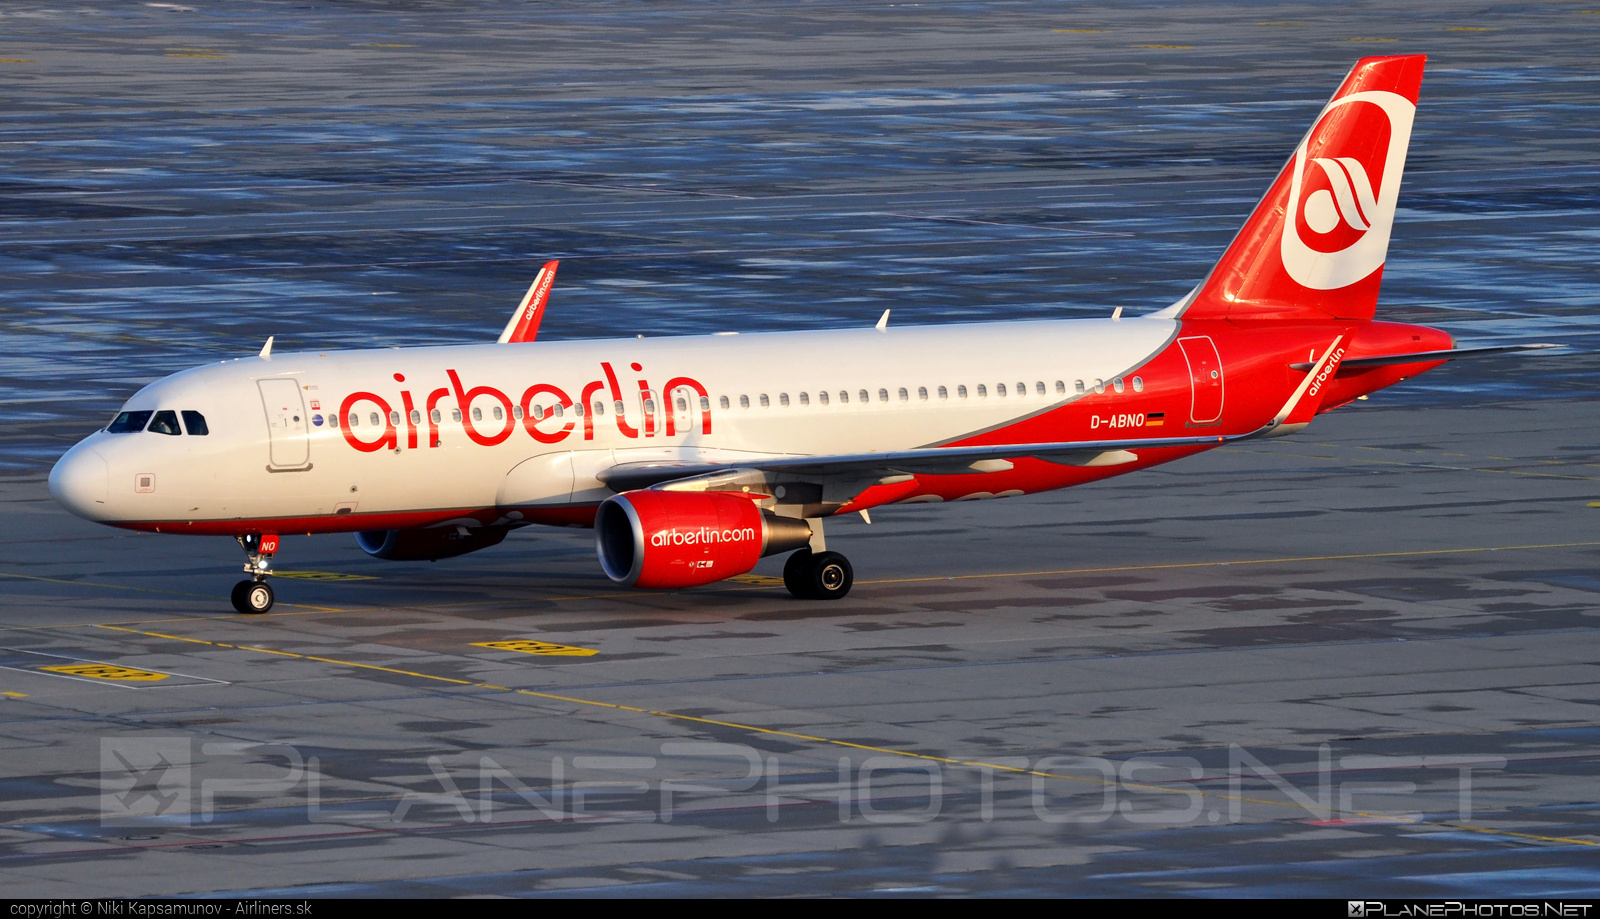 Airbus A320-214 - D-ABNO operated by Air Berlin #a320 #a320family #airberlin #airbus #airbus320